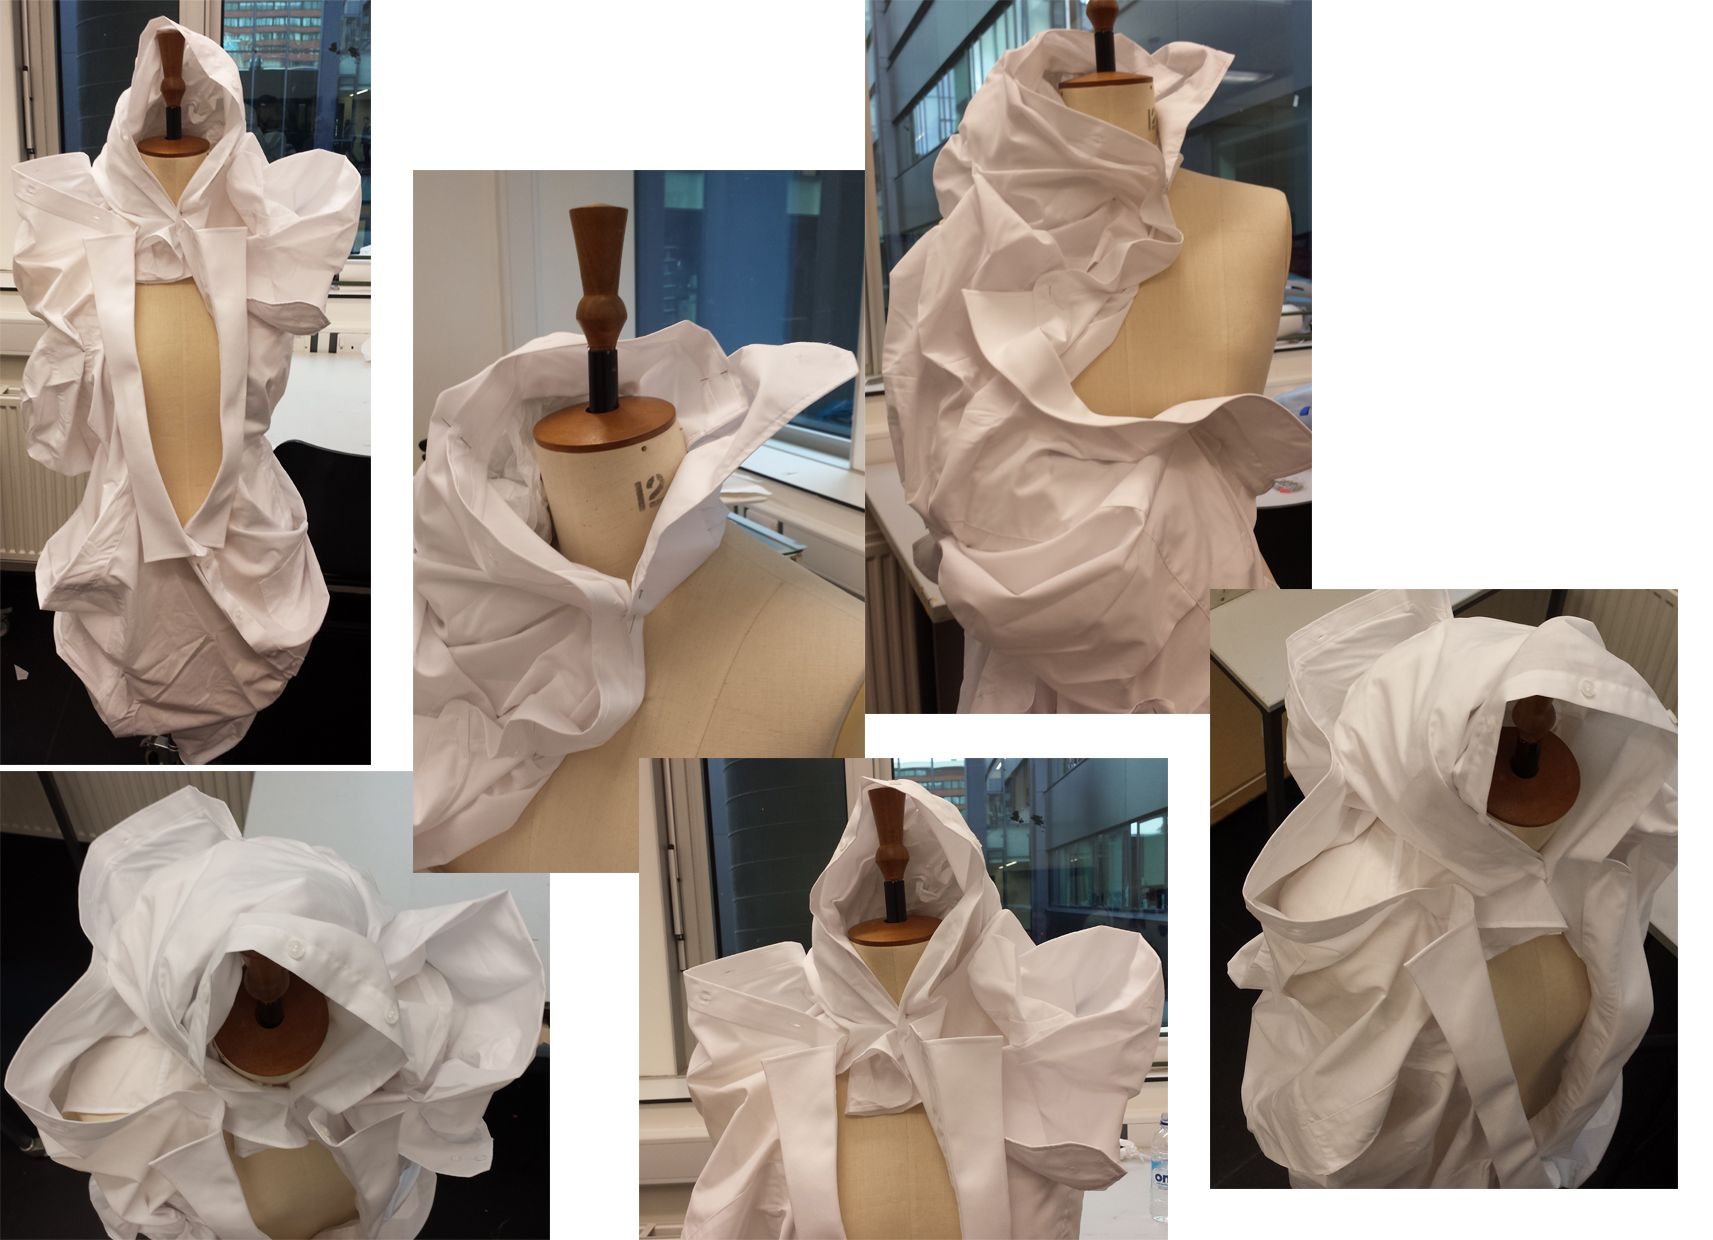 Experimenting with shirts. By taking to large shirts and joining them together in order to create one big piece of fabric it was then used to create shapes and forms on the dummy.